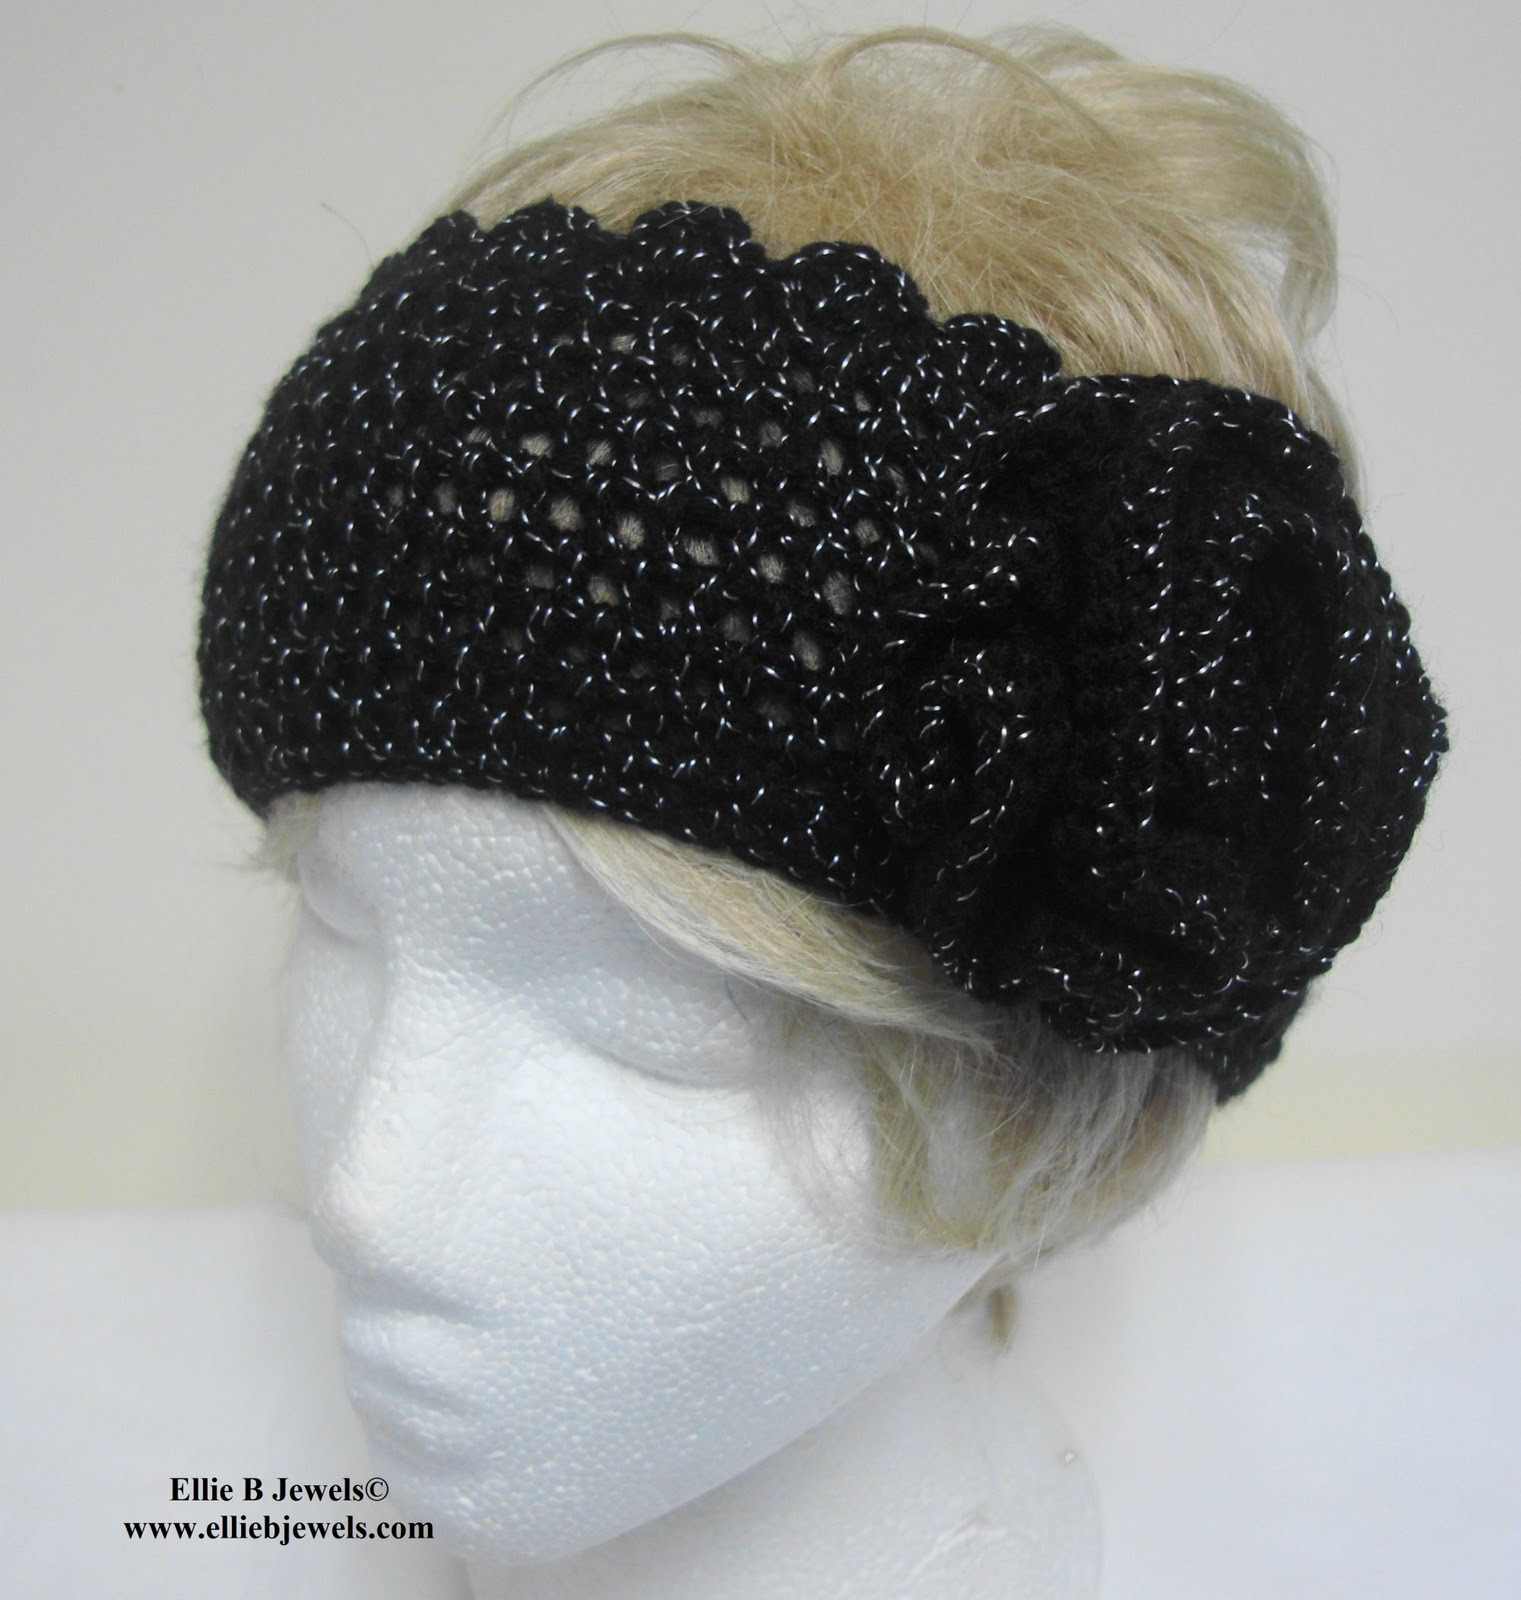 Free Crochet Pattern Headband Ear Warmer Button : From Beads to Buttons: Crochet Ear Warmer Headbands